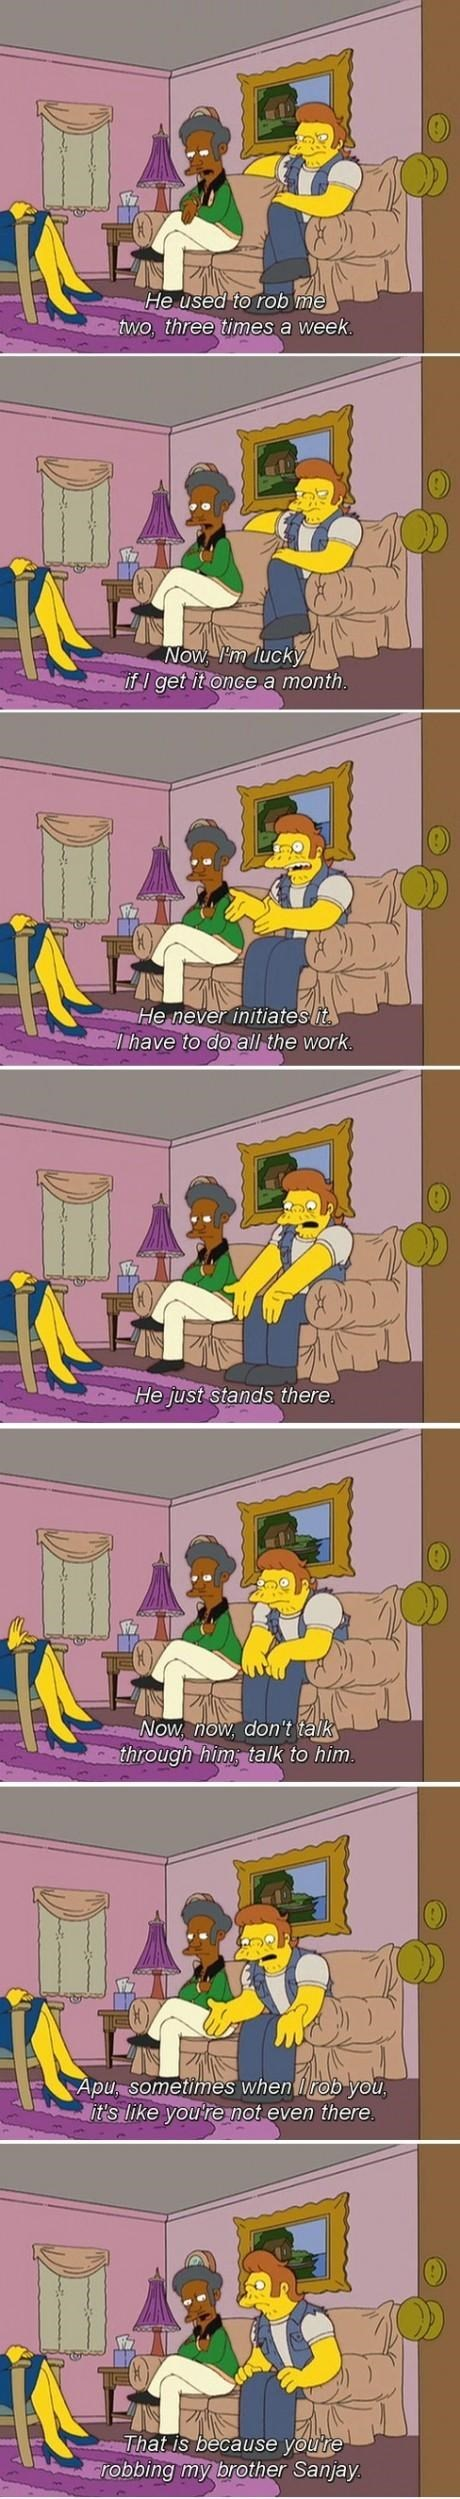 apu,therapy,the simpsons,funny